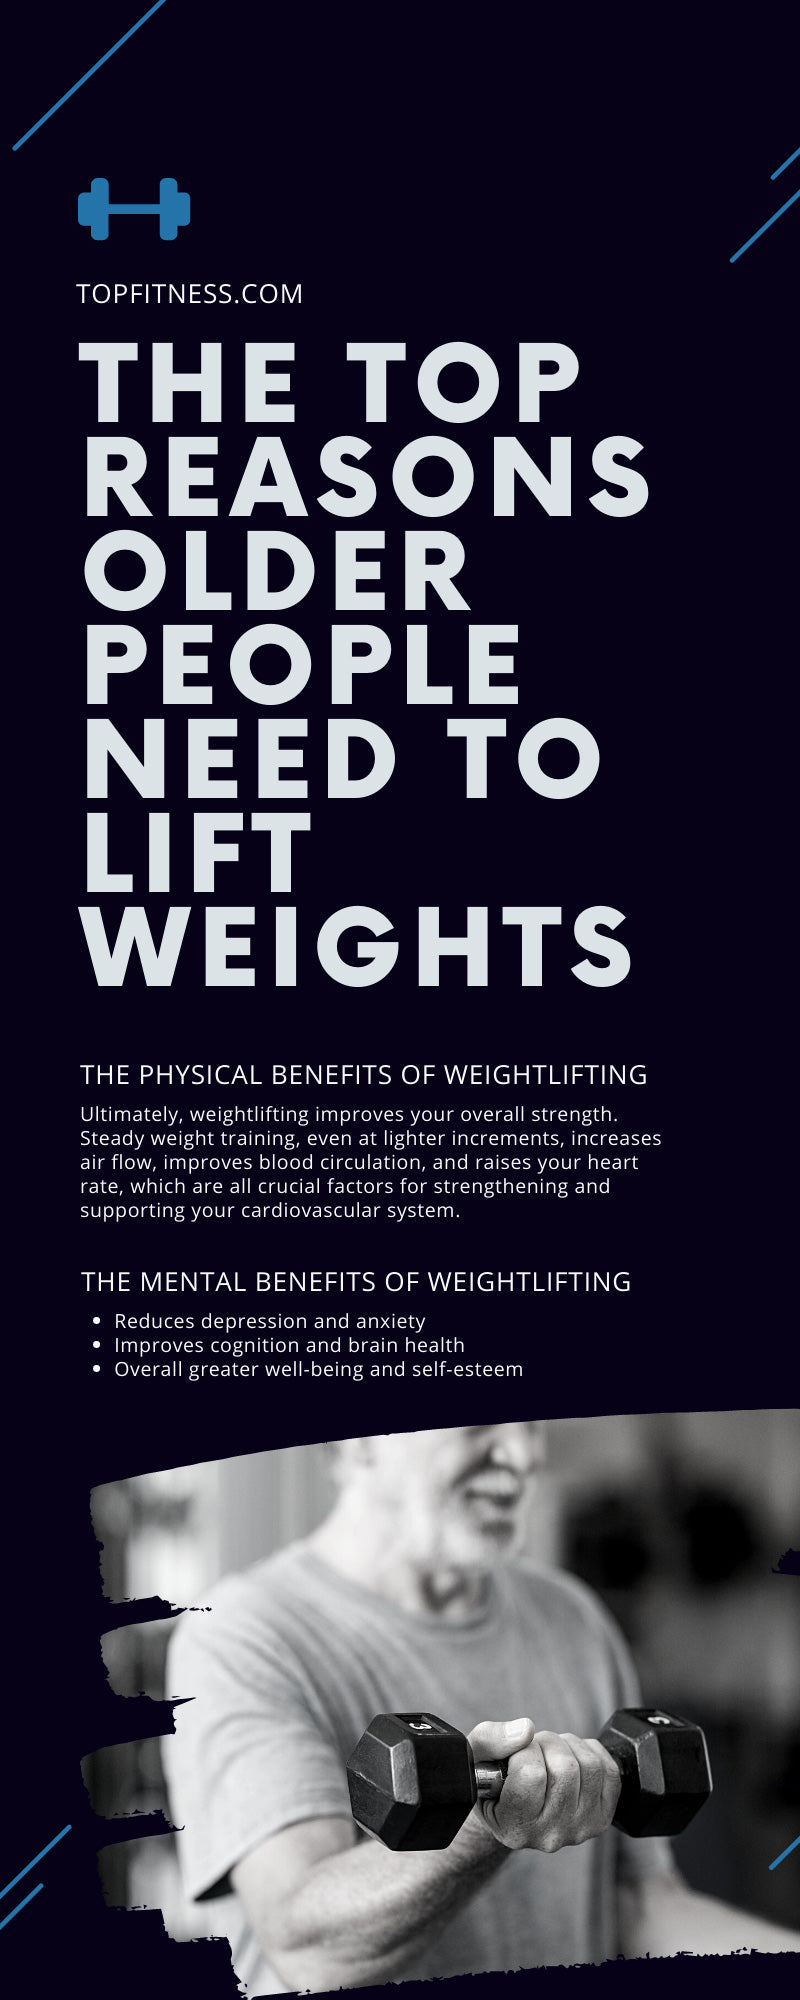 The Top Reasons Older People Need To Lift Weights